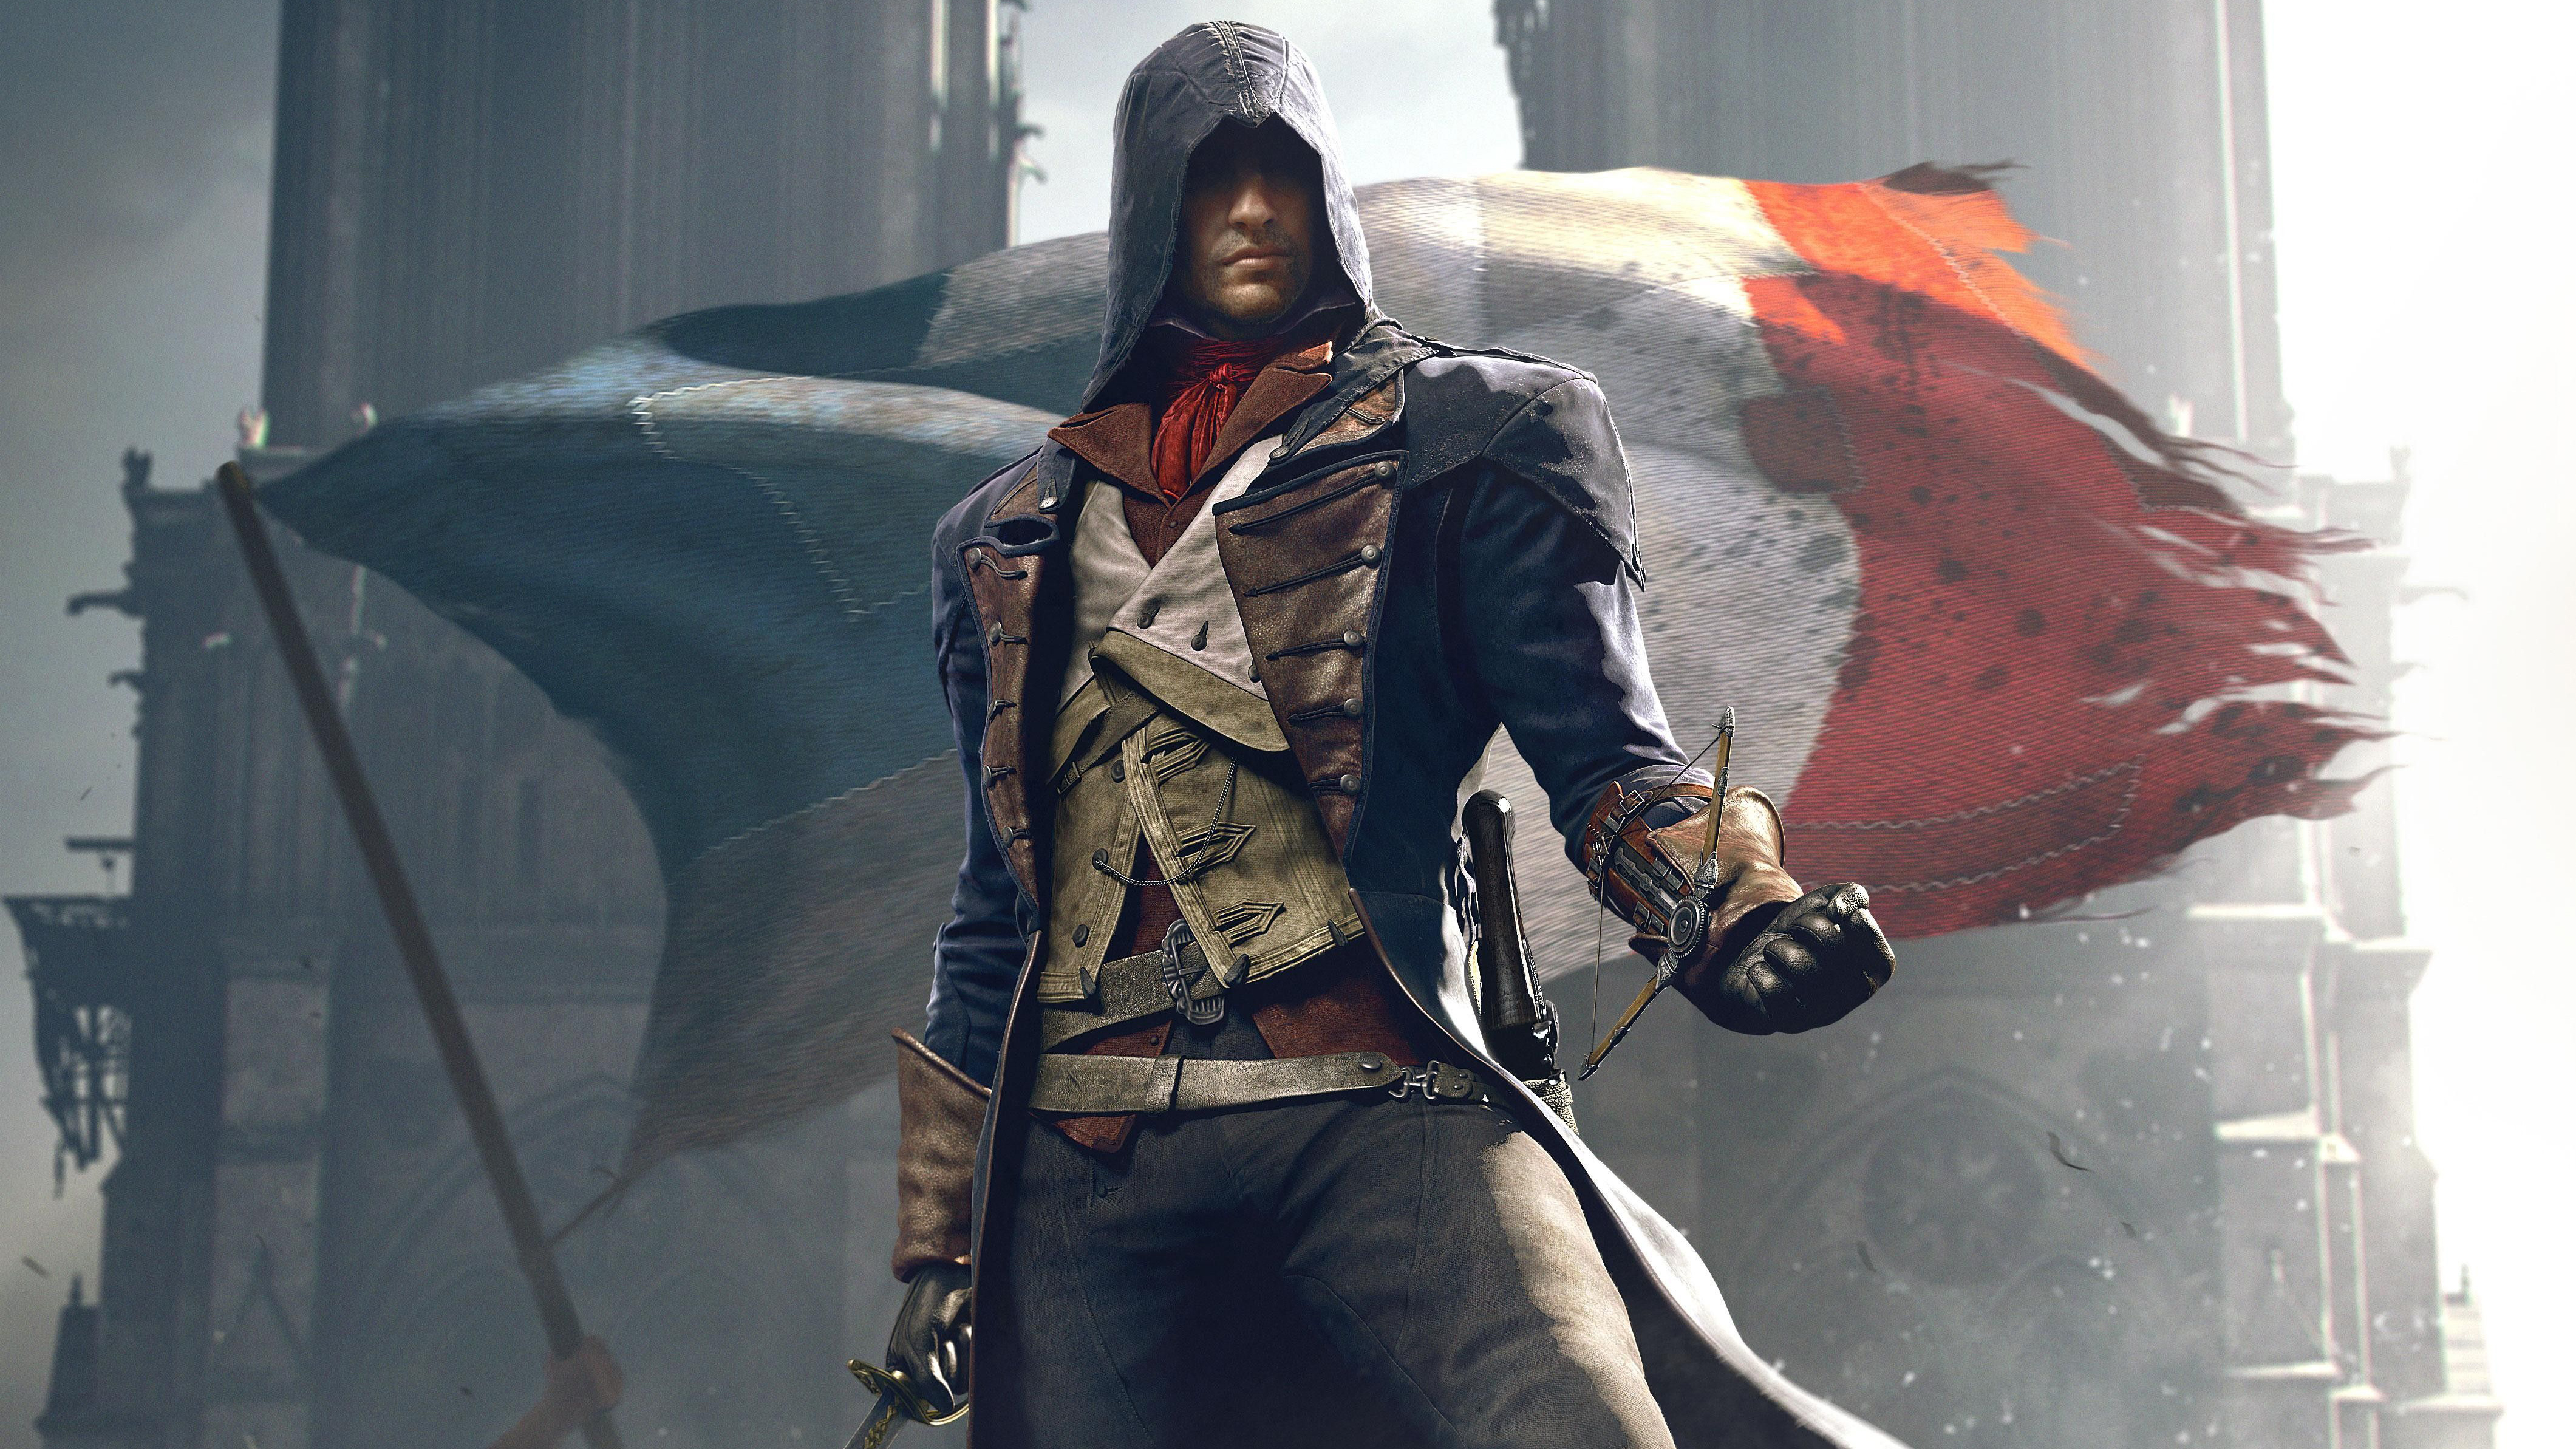 Art Of Assassins Creed Unity Hd Games 4k Wallpapers Images